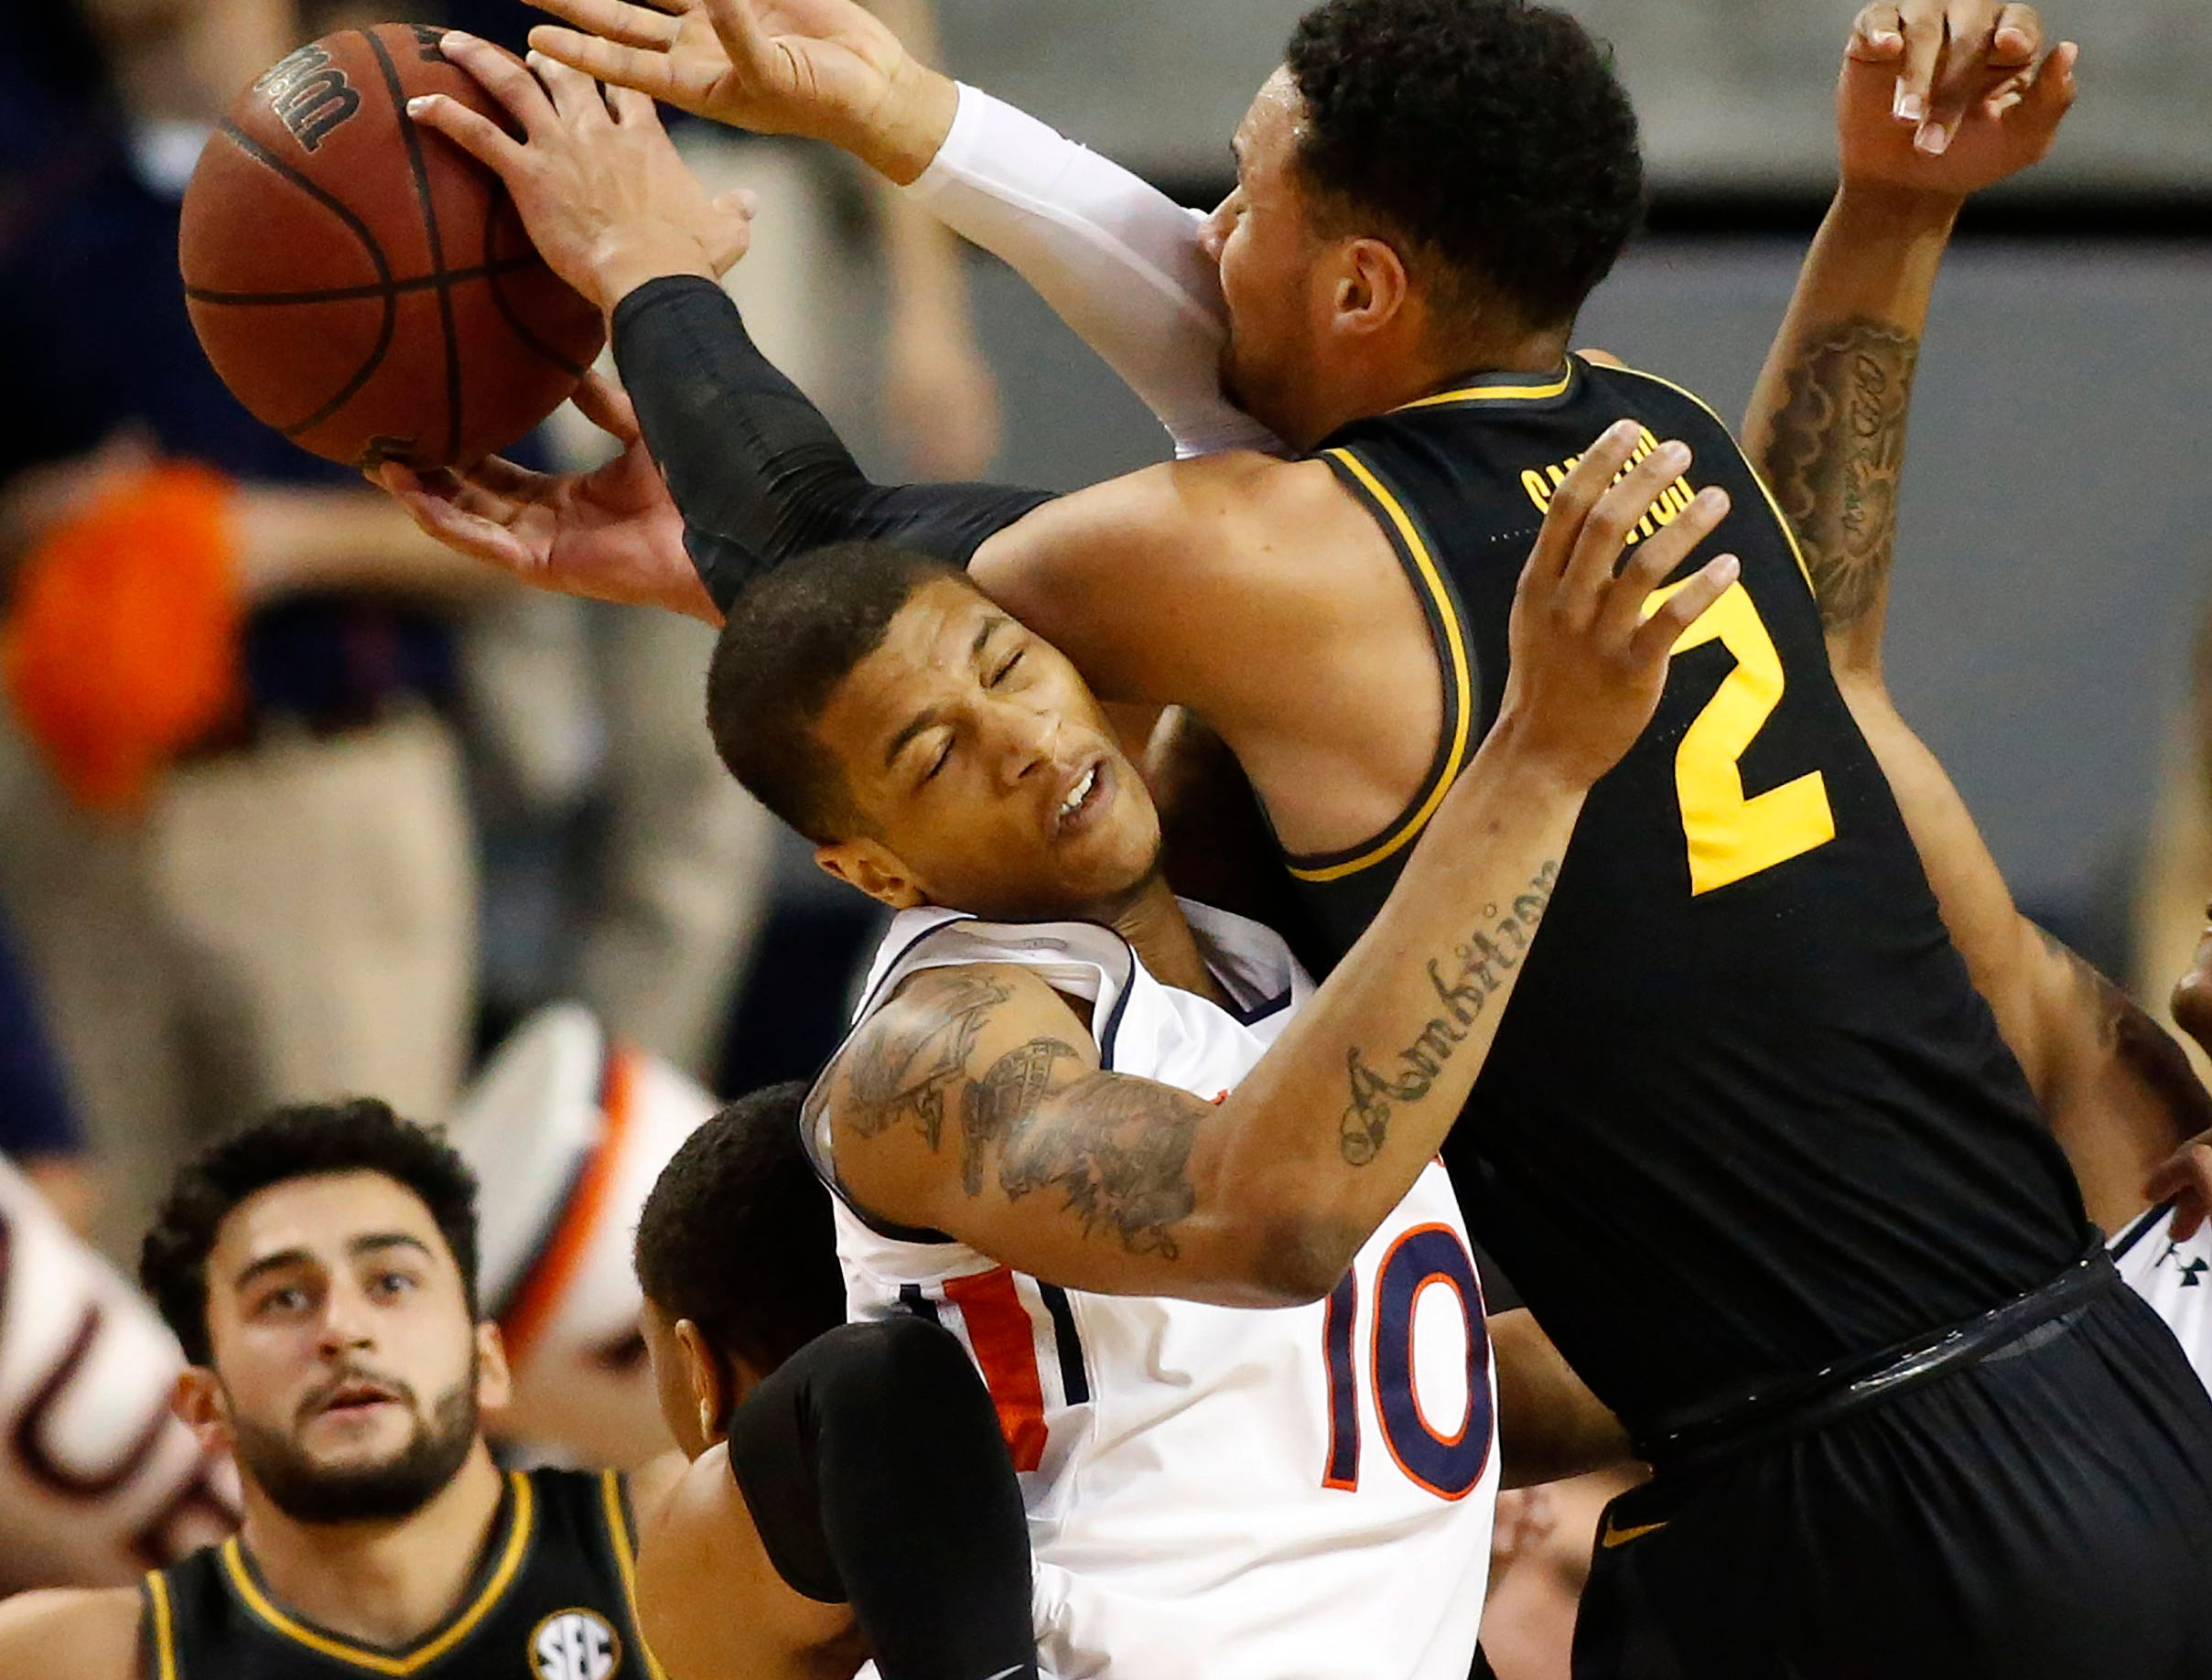 Jan 30, 2019; Auburn, AL, USA; Missouri Tigers guard KJ Santos (2) battles for a rebound against Auburn Tigers guard Samir Doughty (10) during the first half at Auburn Arena. Mandatory Credit: John Reed-USA TODAY Sports